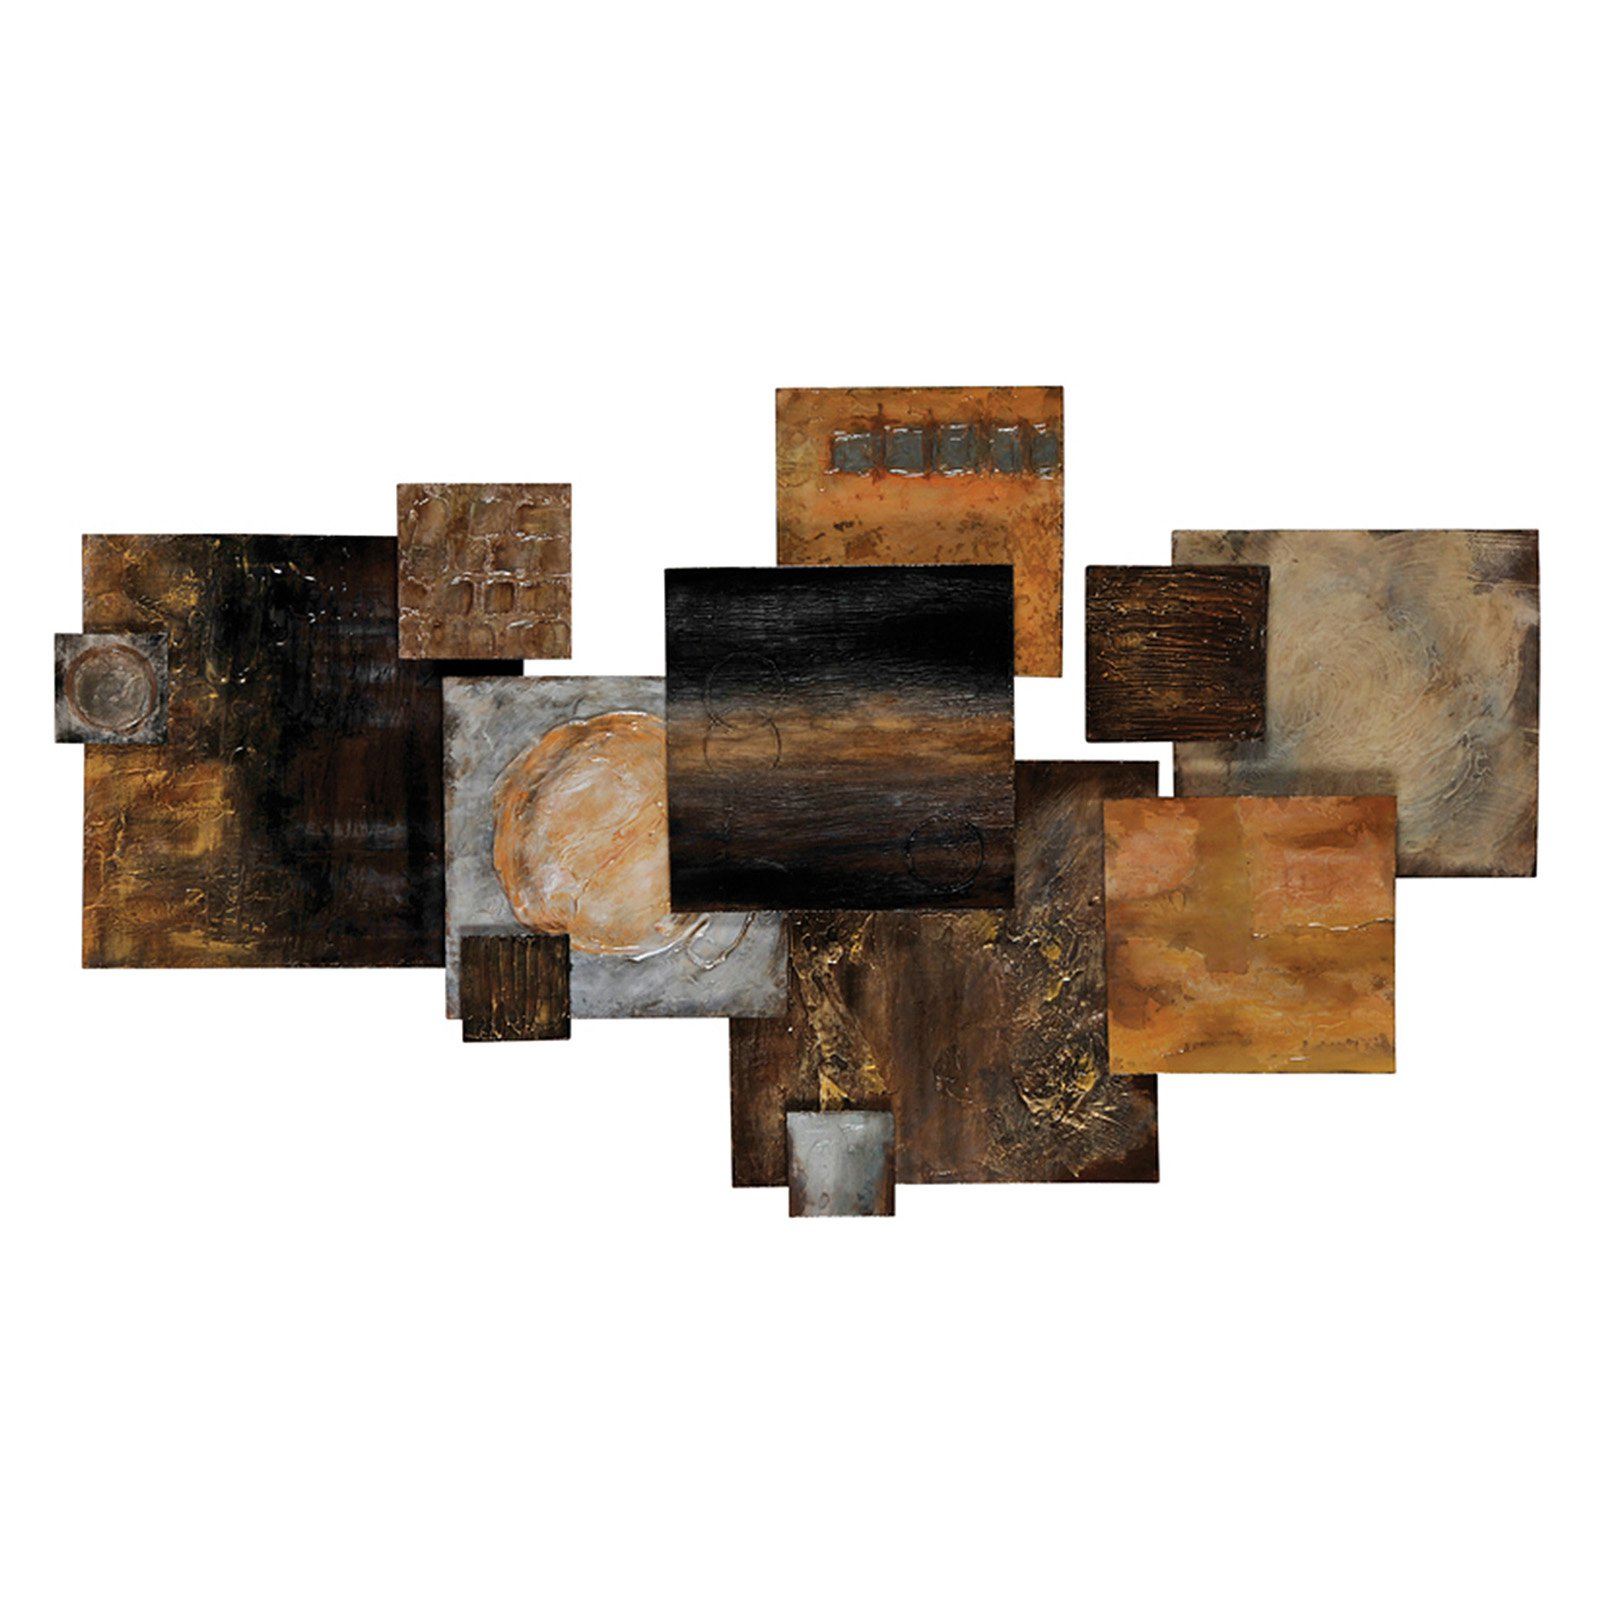 Transforming Wall Sculpture - 51W x 29H in.